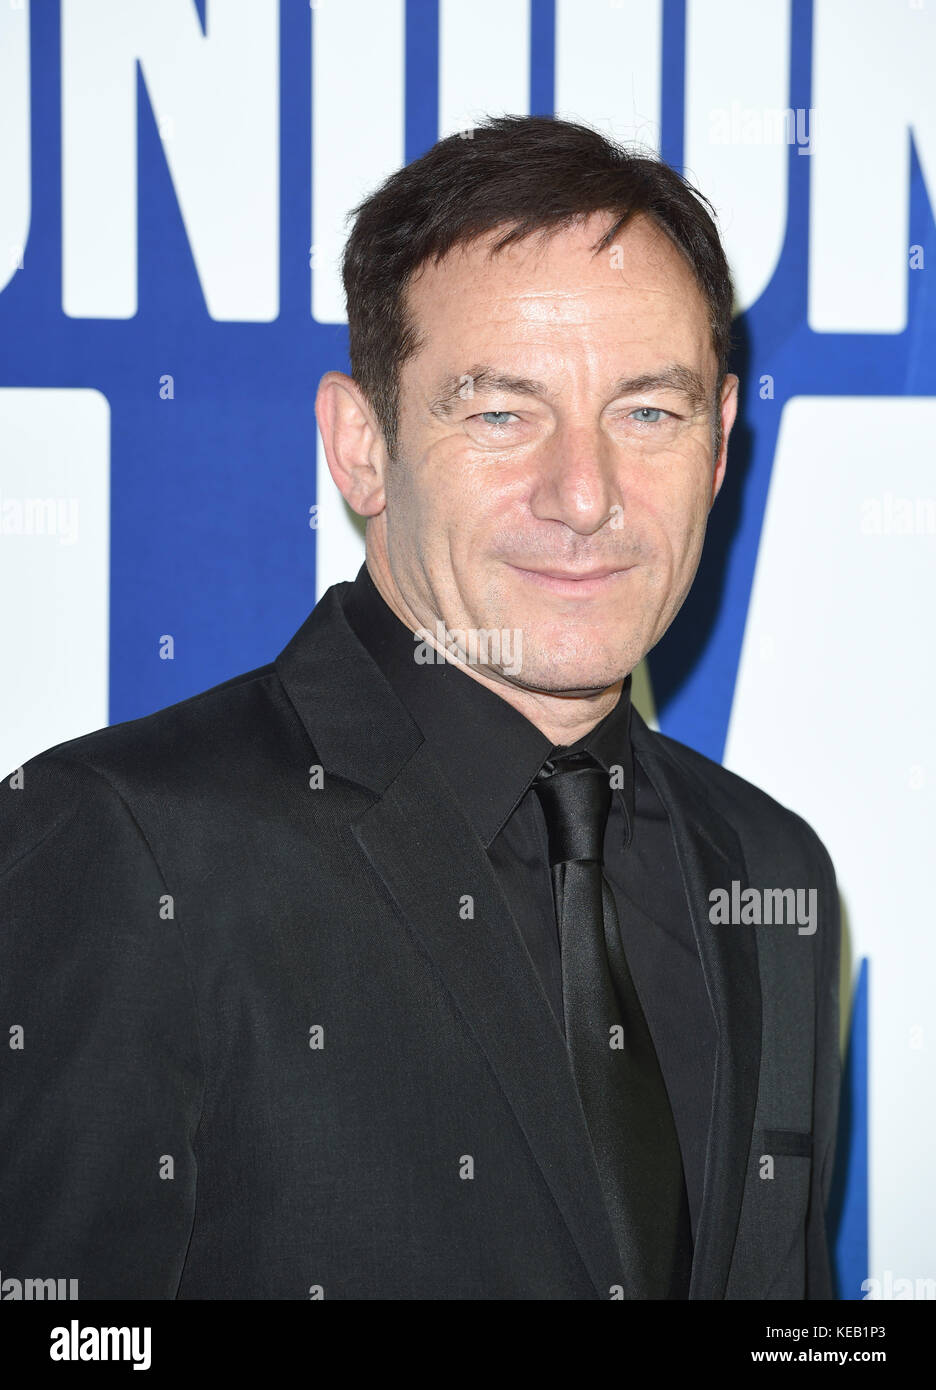 Photo Must Be Credited ©Alpha Press 079965 14/10/2017 Jason Isaacs London Film Festival Awards 2017  during - Stock Image